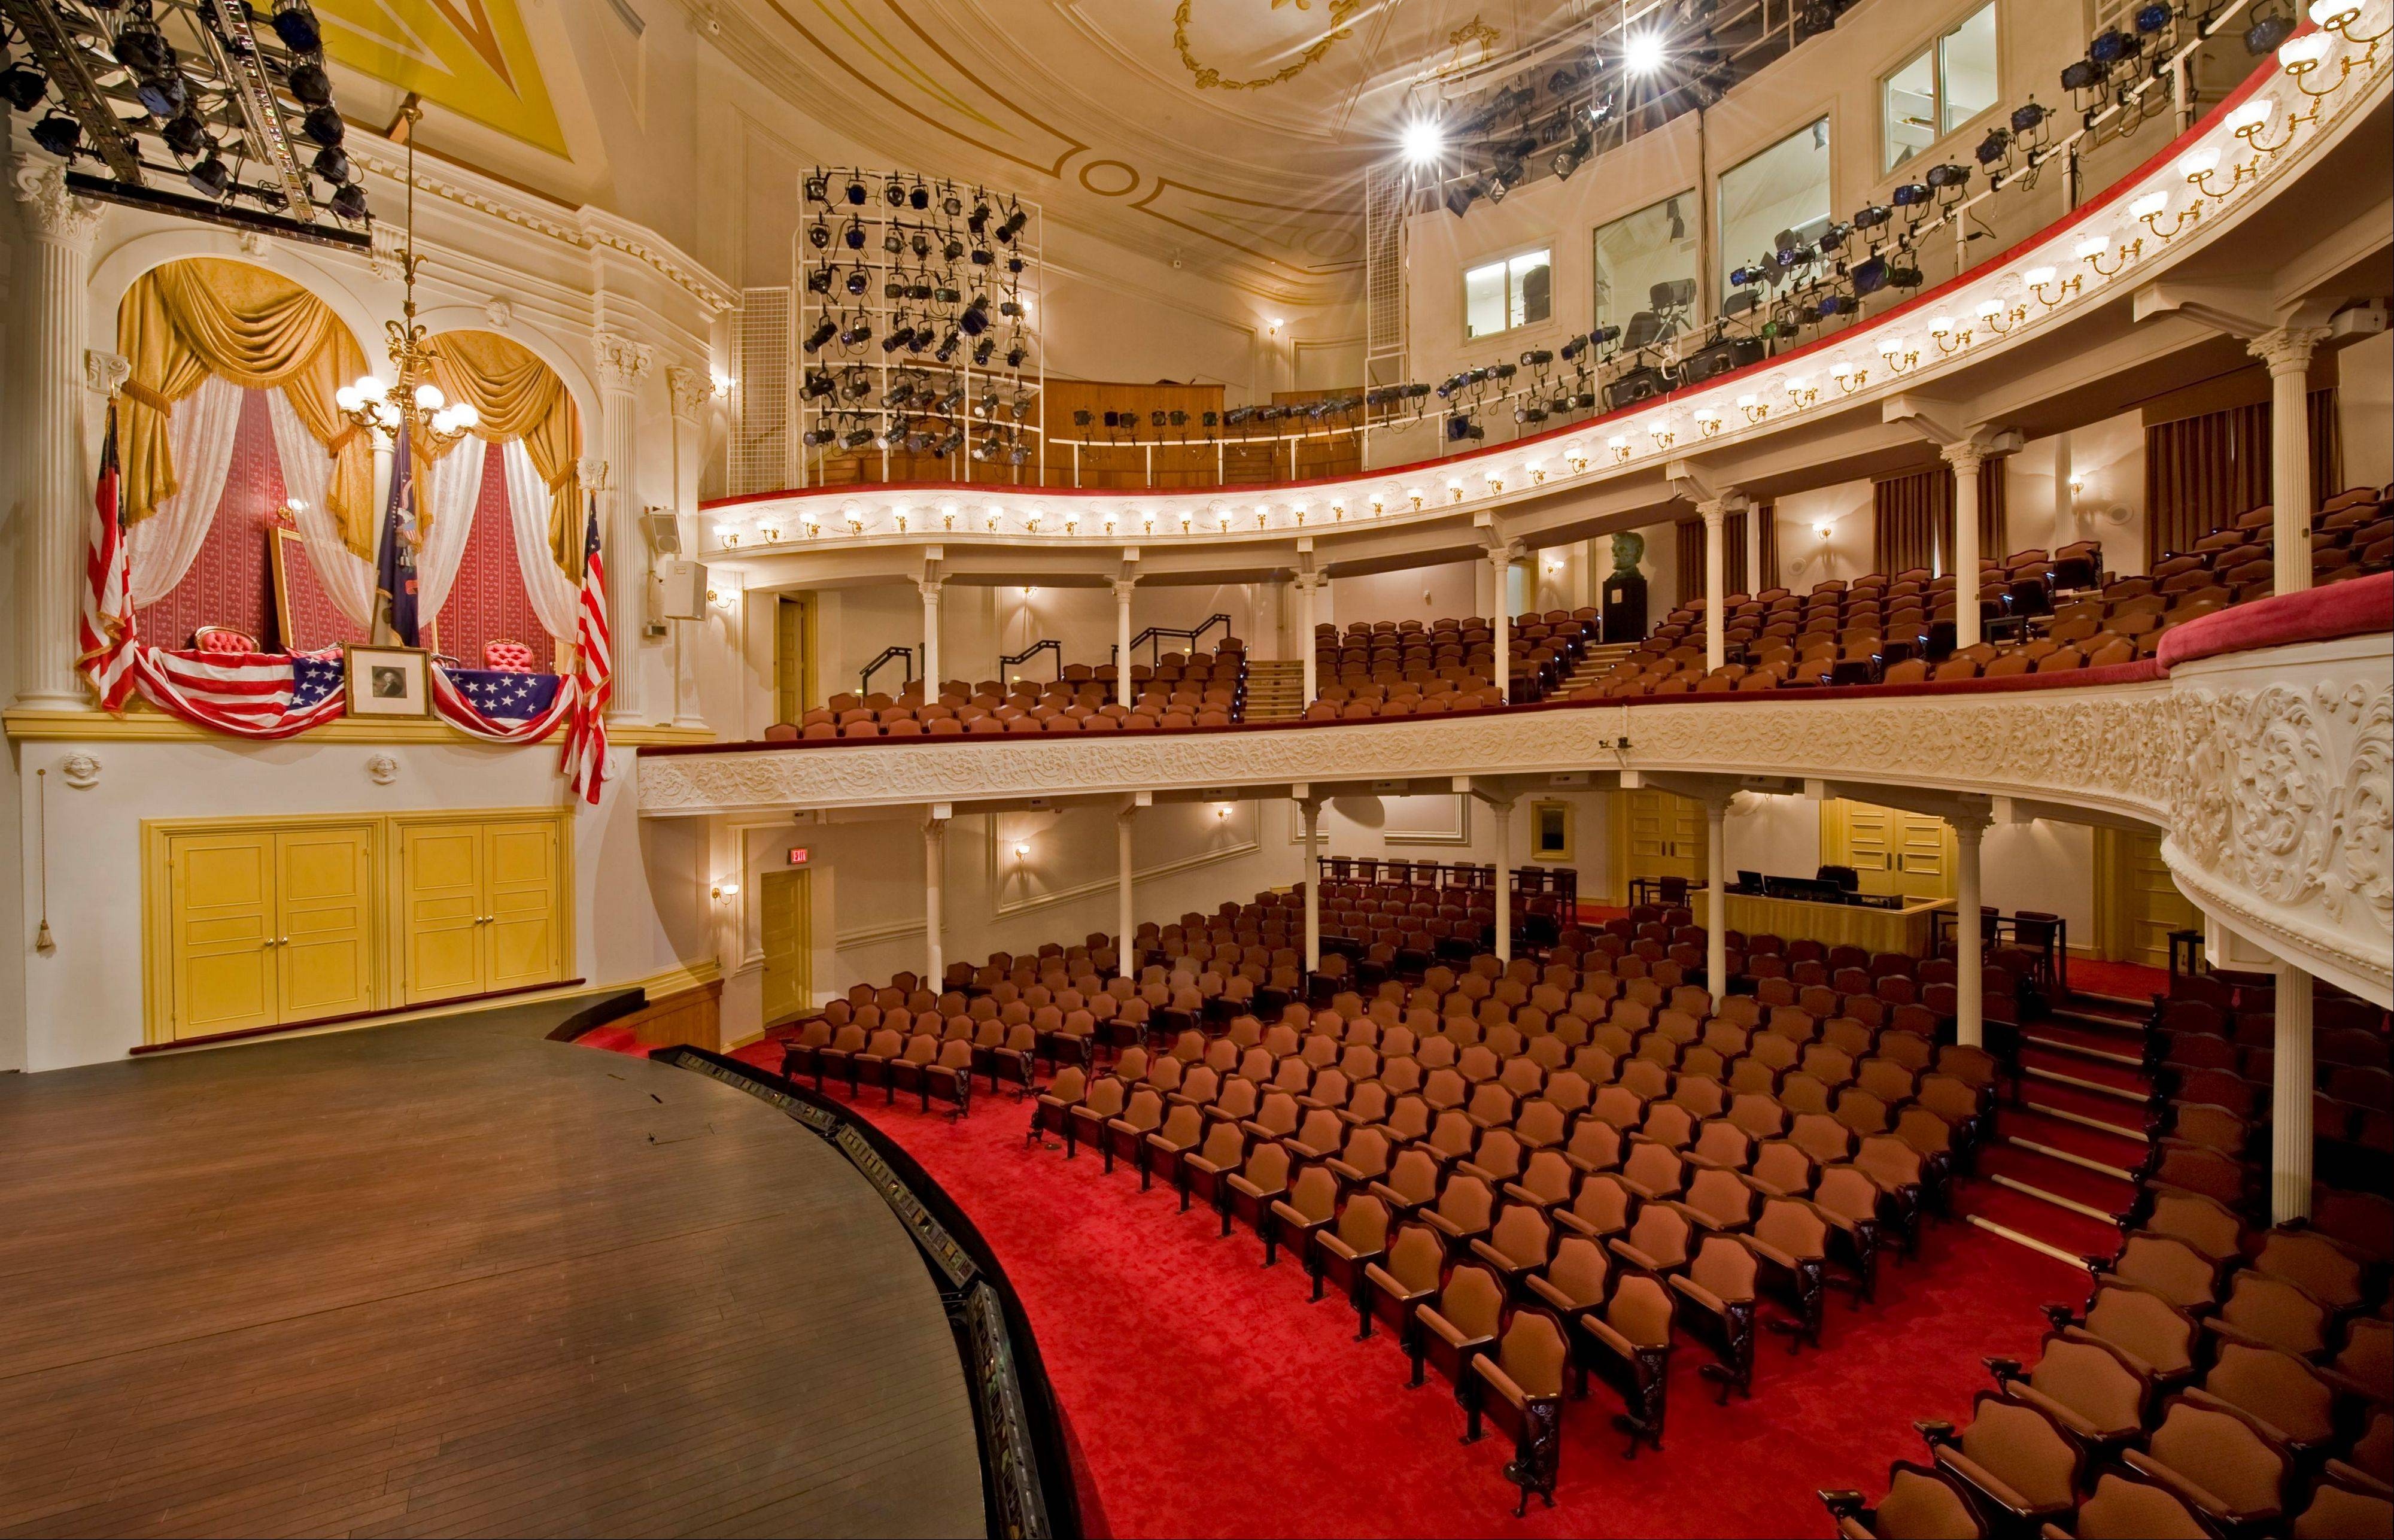 The interior of Ford's Theatre, where President Lincoln was shot while attending a play in 1865, was re-created in the 1960s to look the way it did when Lincoln was shot.